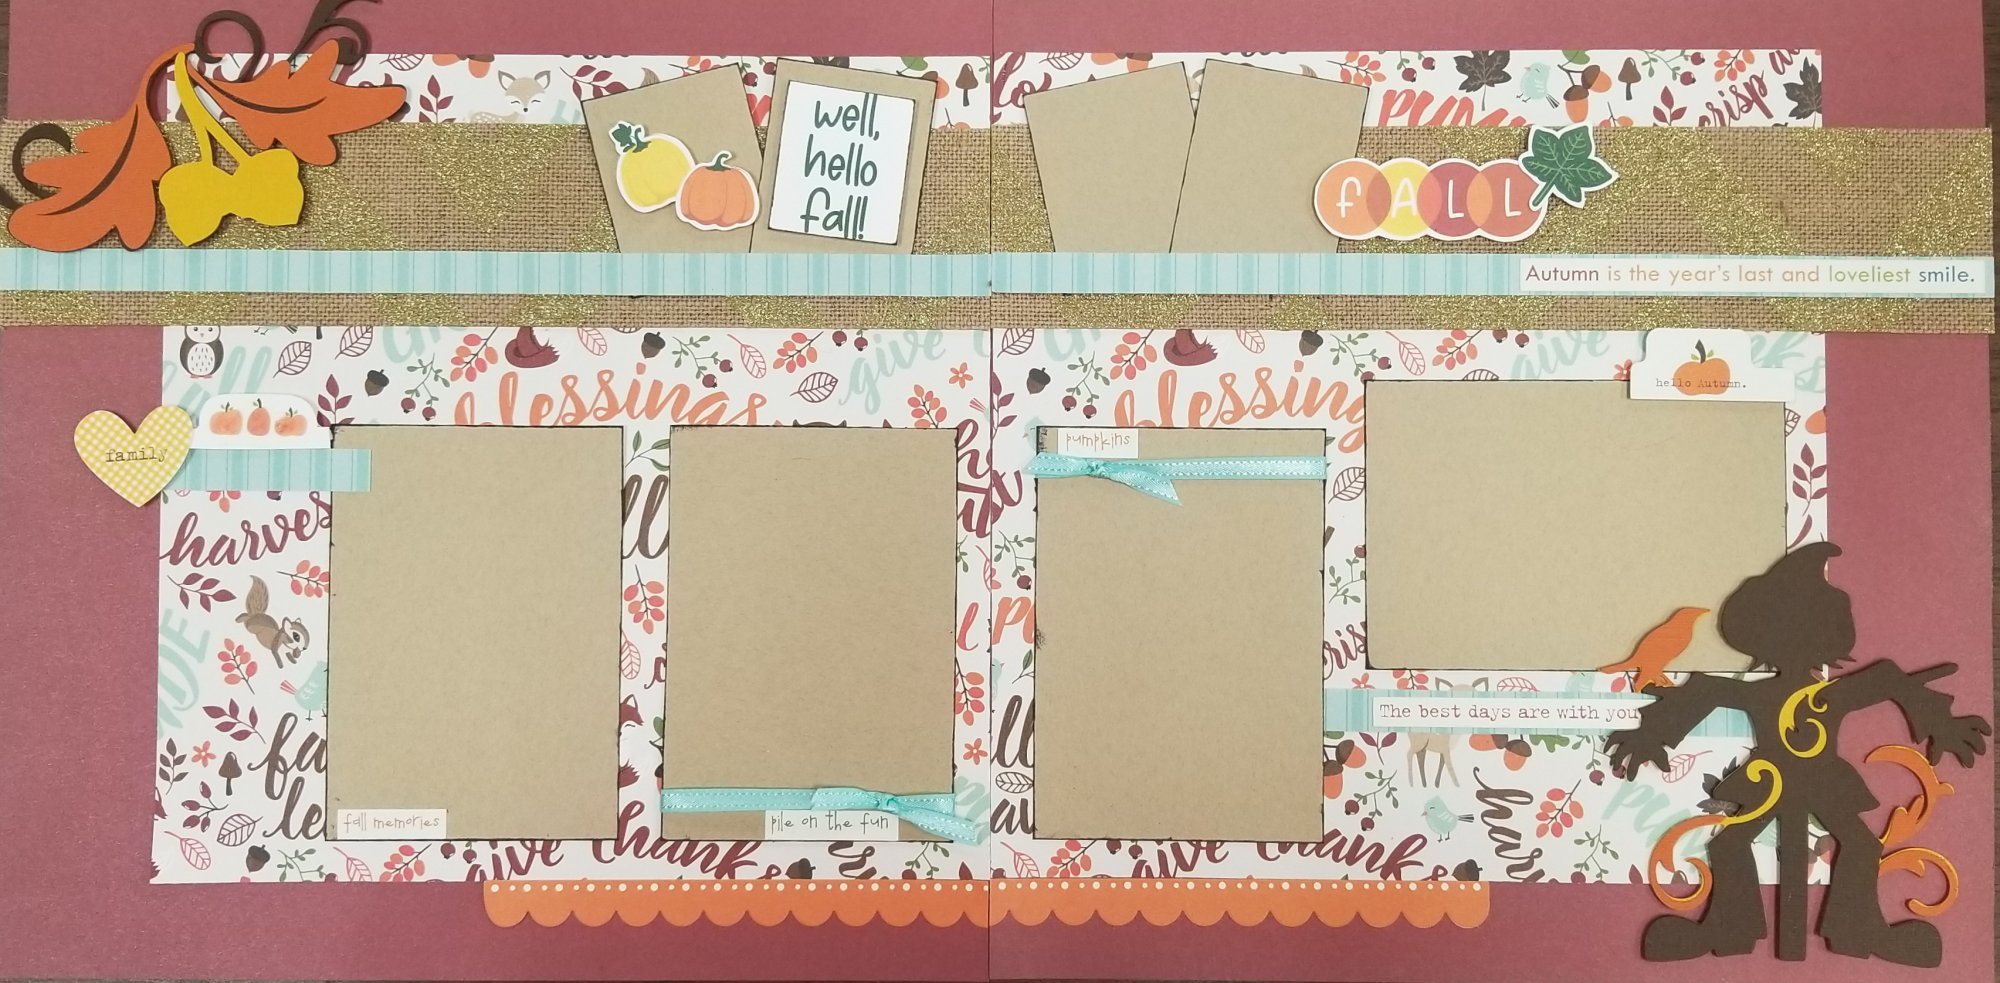 Well, Hello Fall 2-page layout